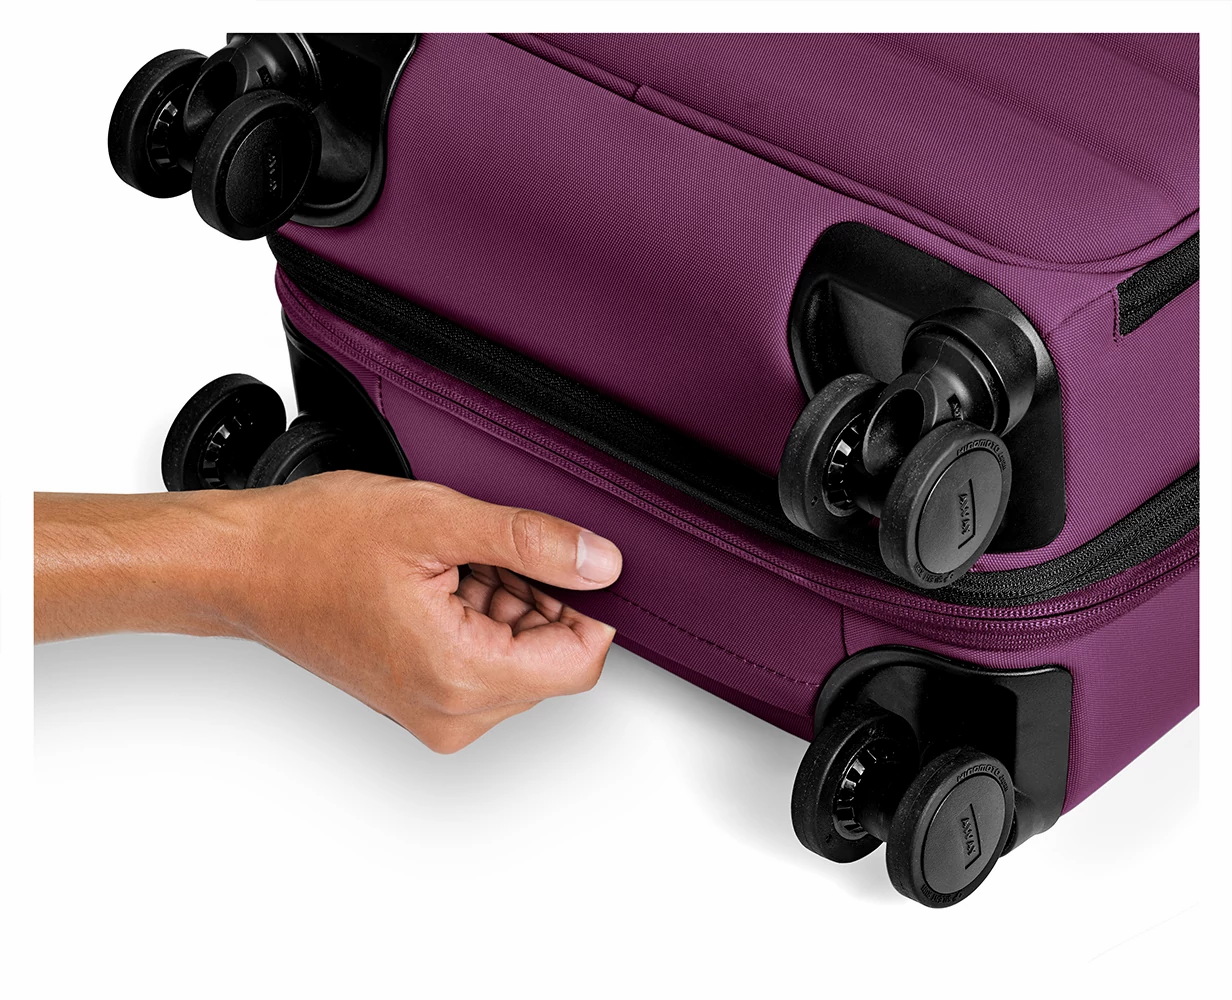 The Expandable Carry-On in Plum.